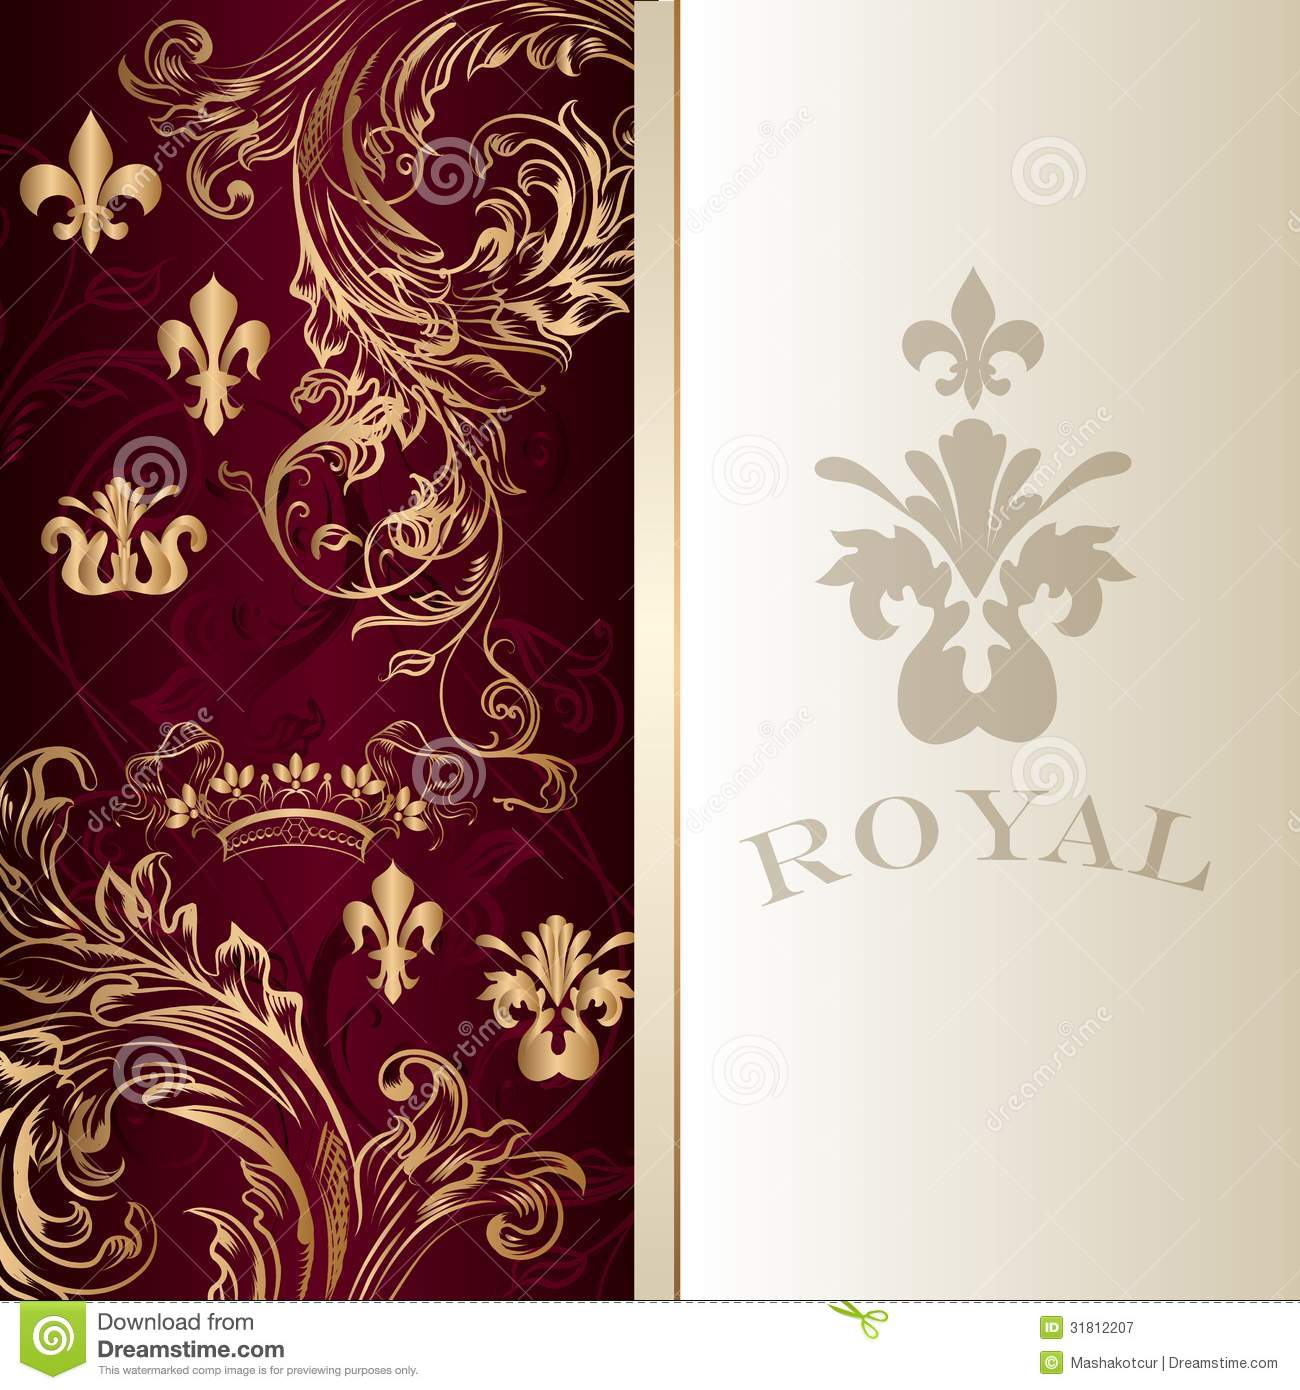 Elegant Invitation Card In Royal Luxury Style Stock Vector ...